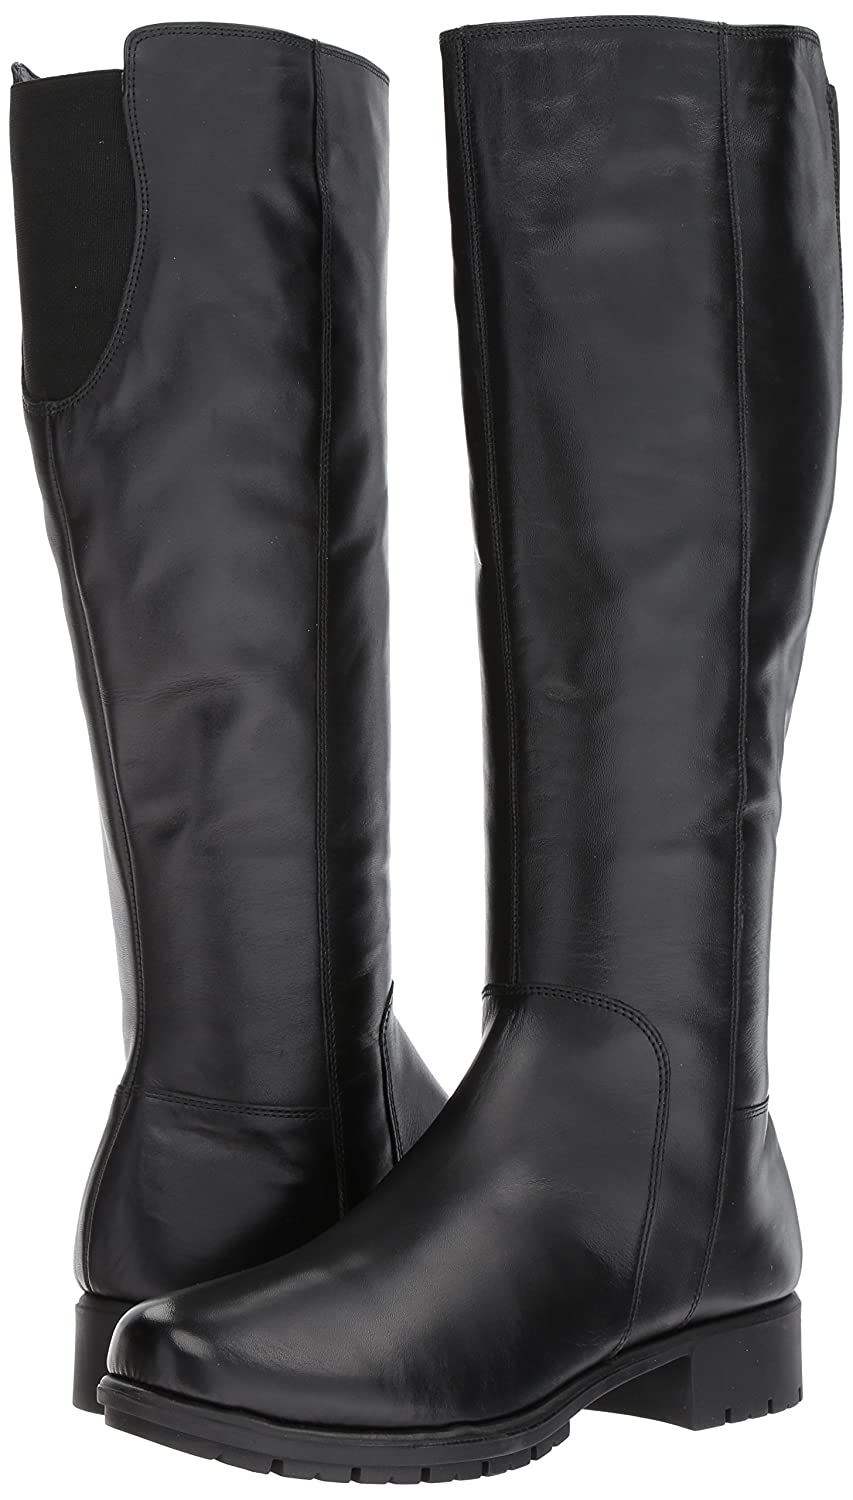 Aerosoles Just 4 You Knee High Boot B073HDZG8G 12 W US|Black Leather